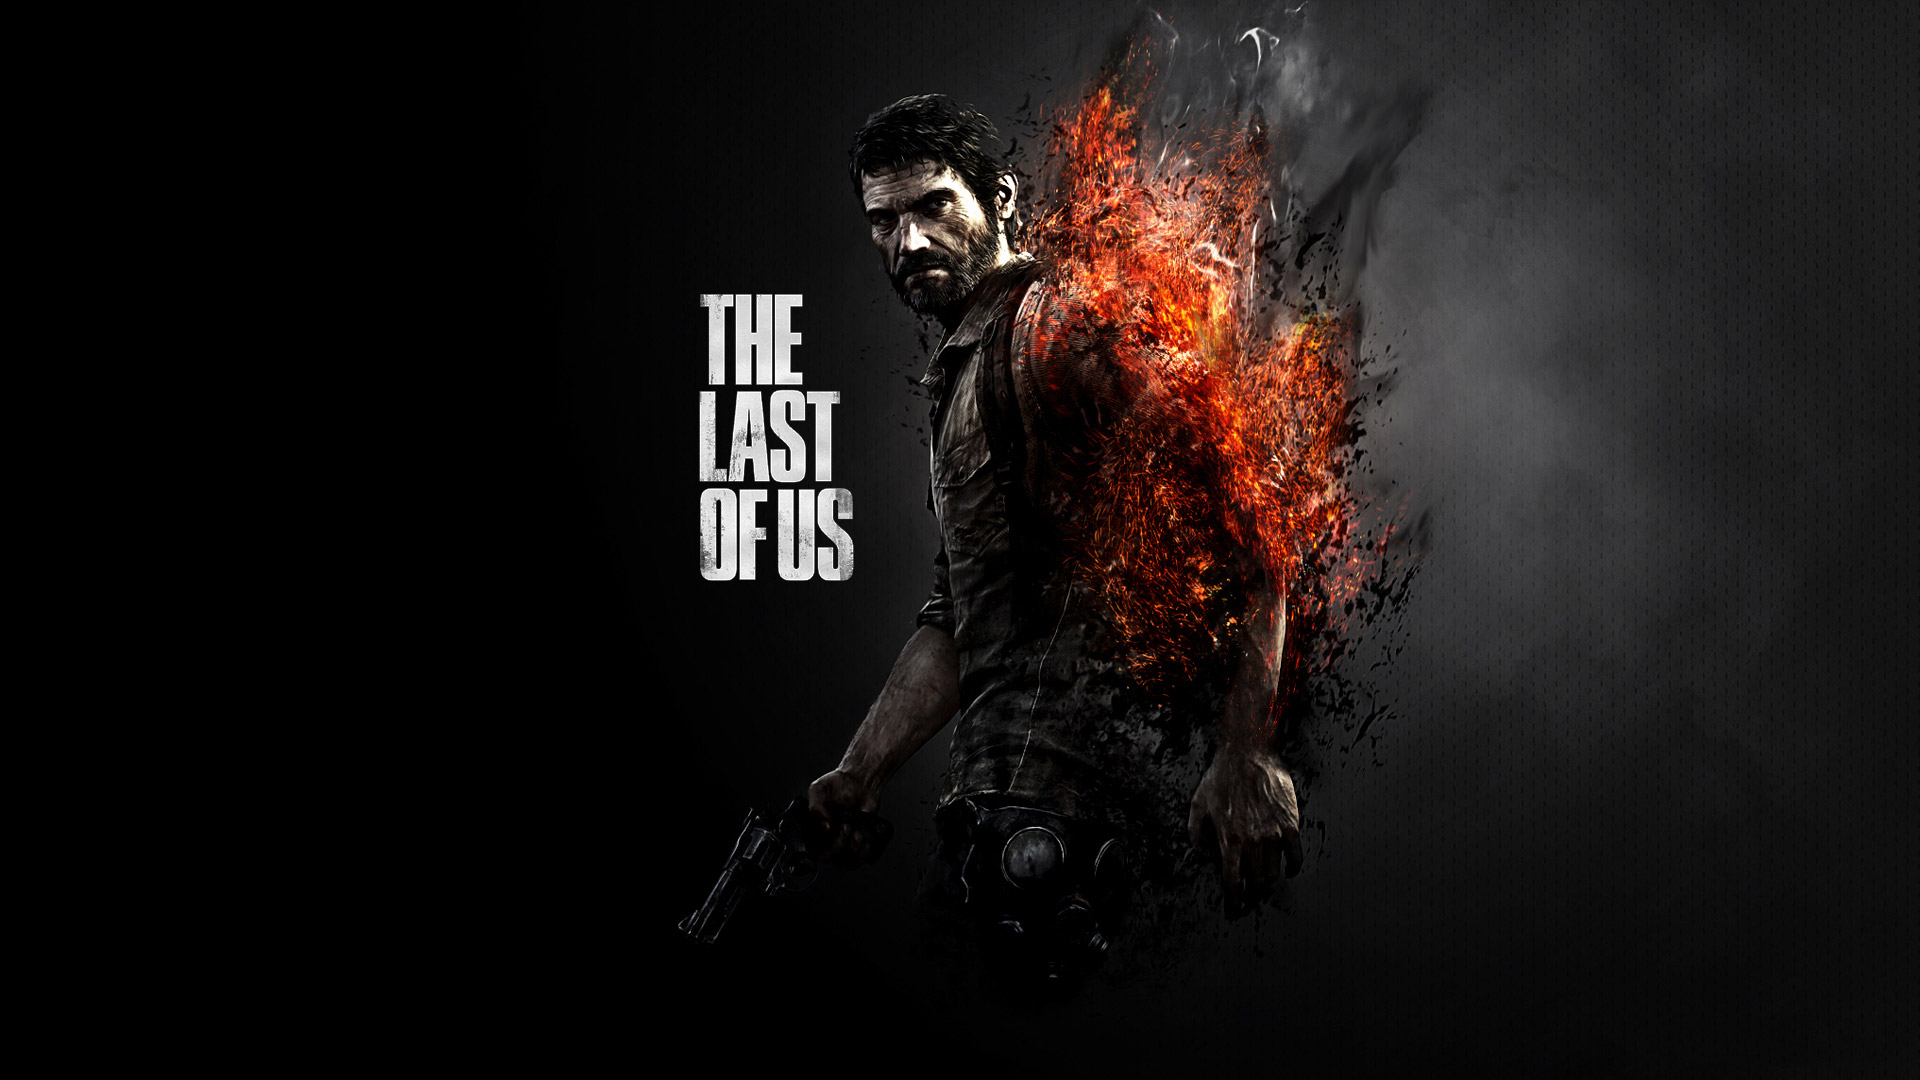 The Last of Us wallpaper 18